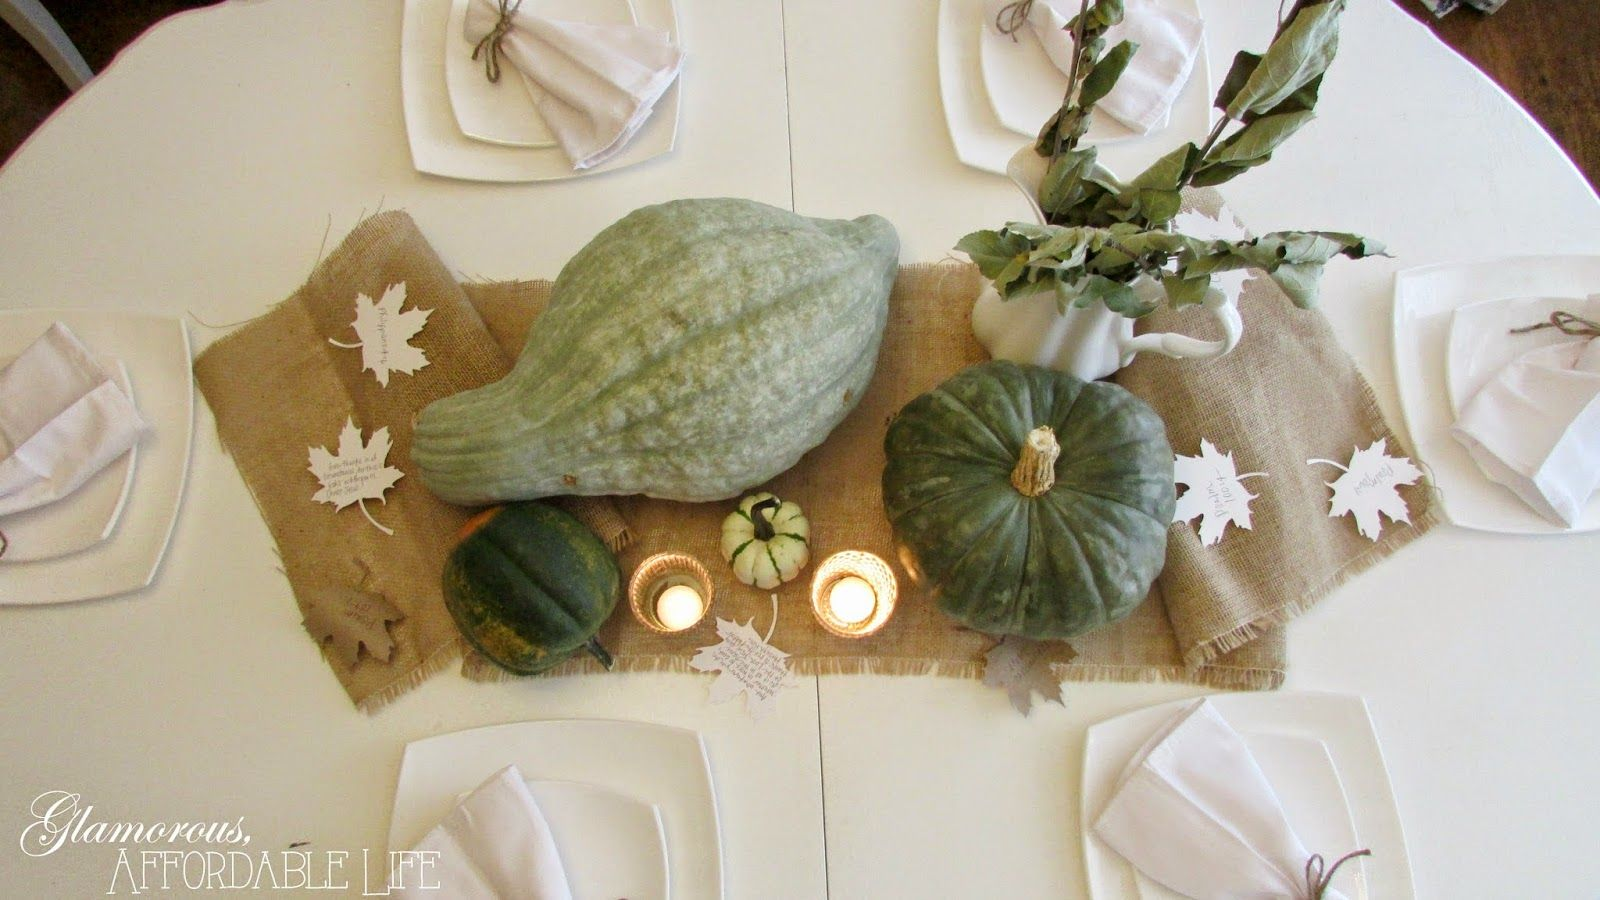 2014 Thanksgiving Tablescape from Glamorous, Affordable Life